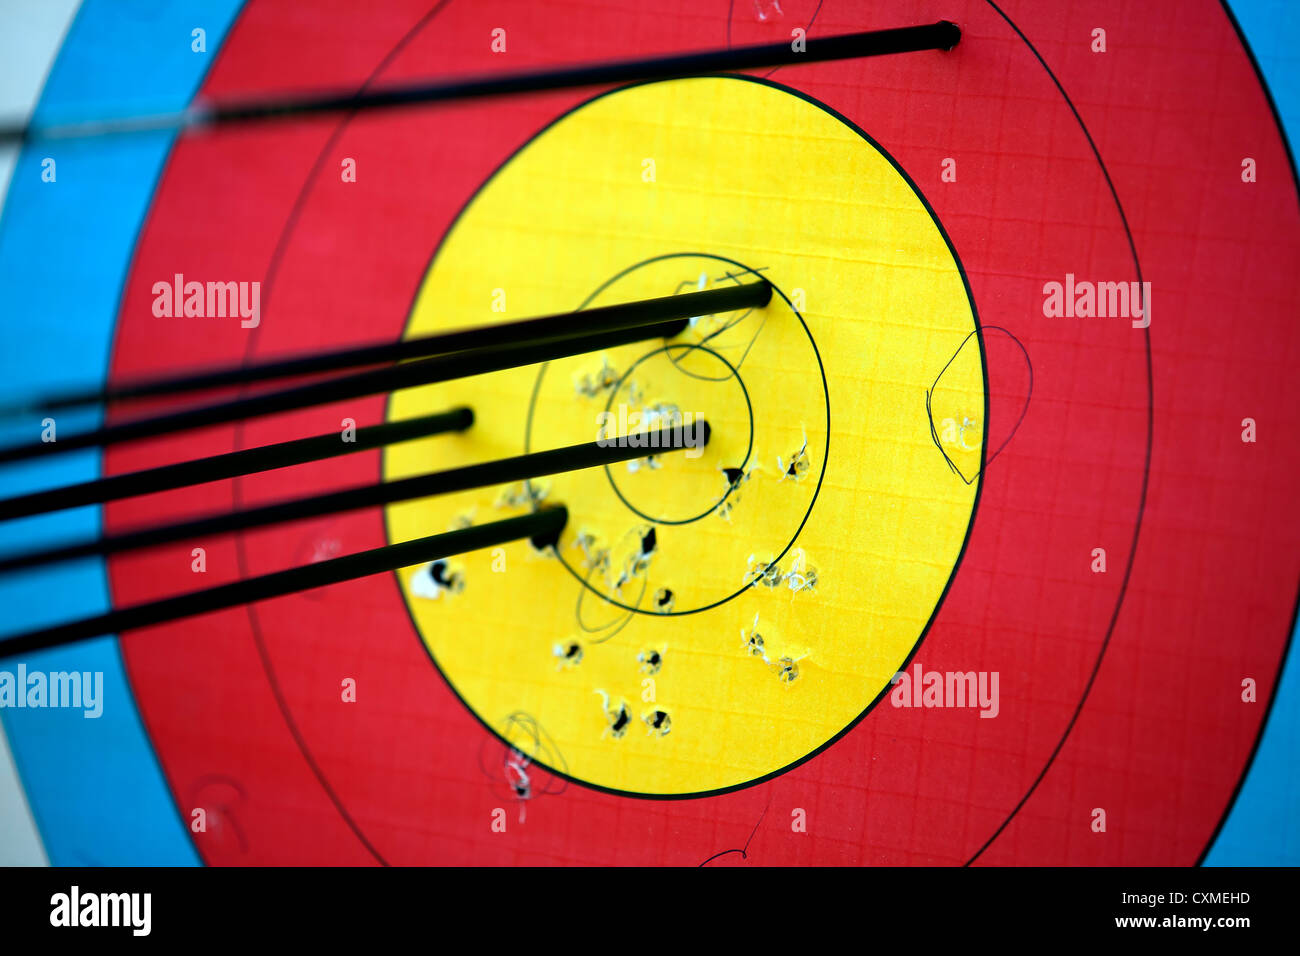 Target,Archery,Aspirations,Accuracy,Circle,Descriptive color,Concepts,Competition,Sports,Hitting,Hole,Paper,Target, Stock Photo